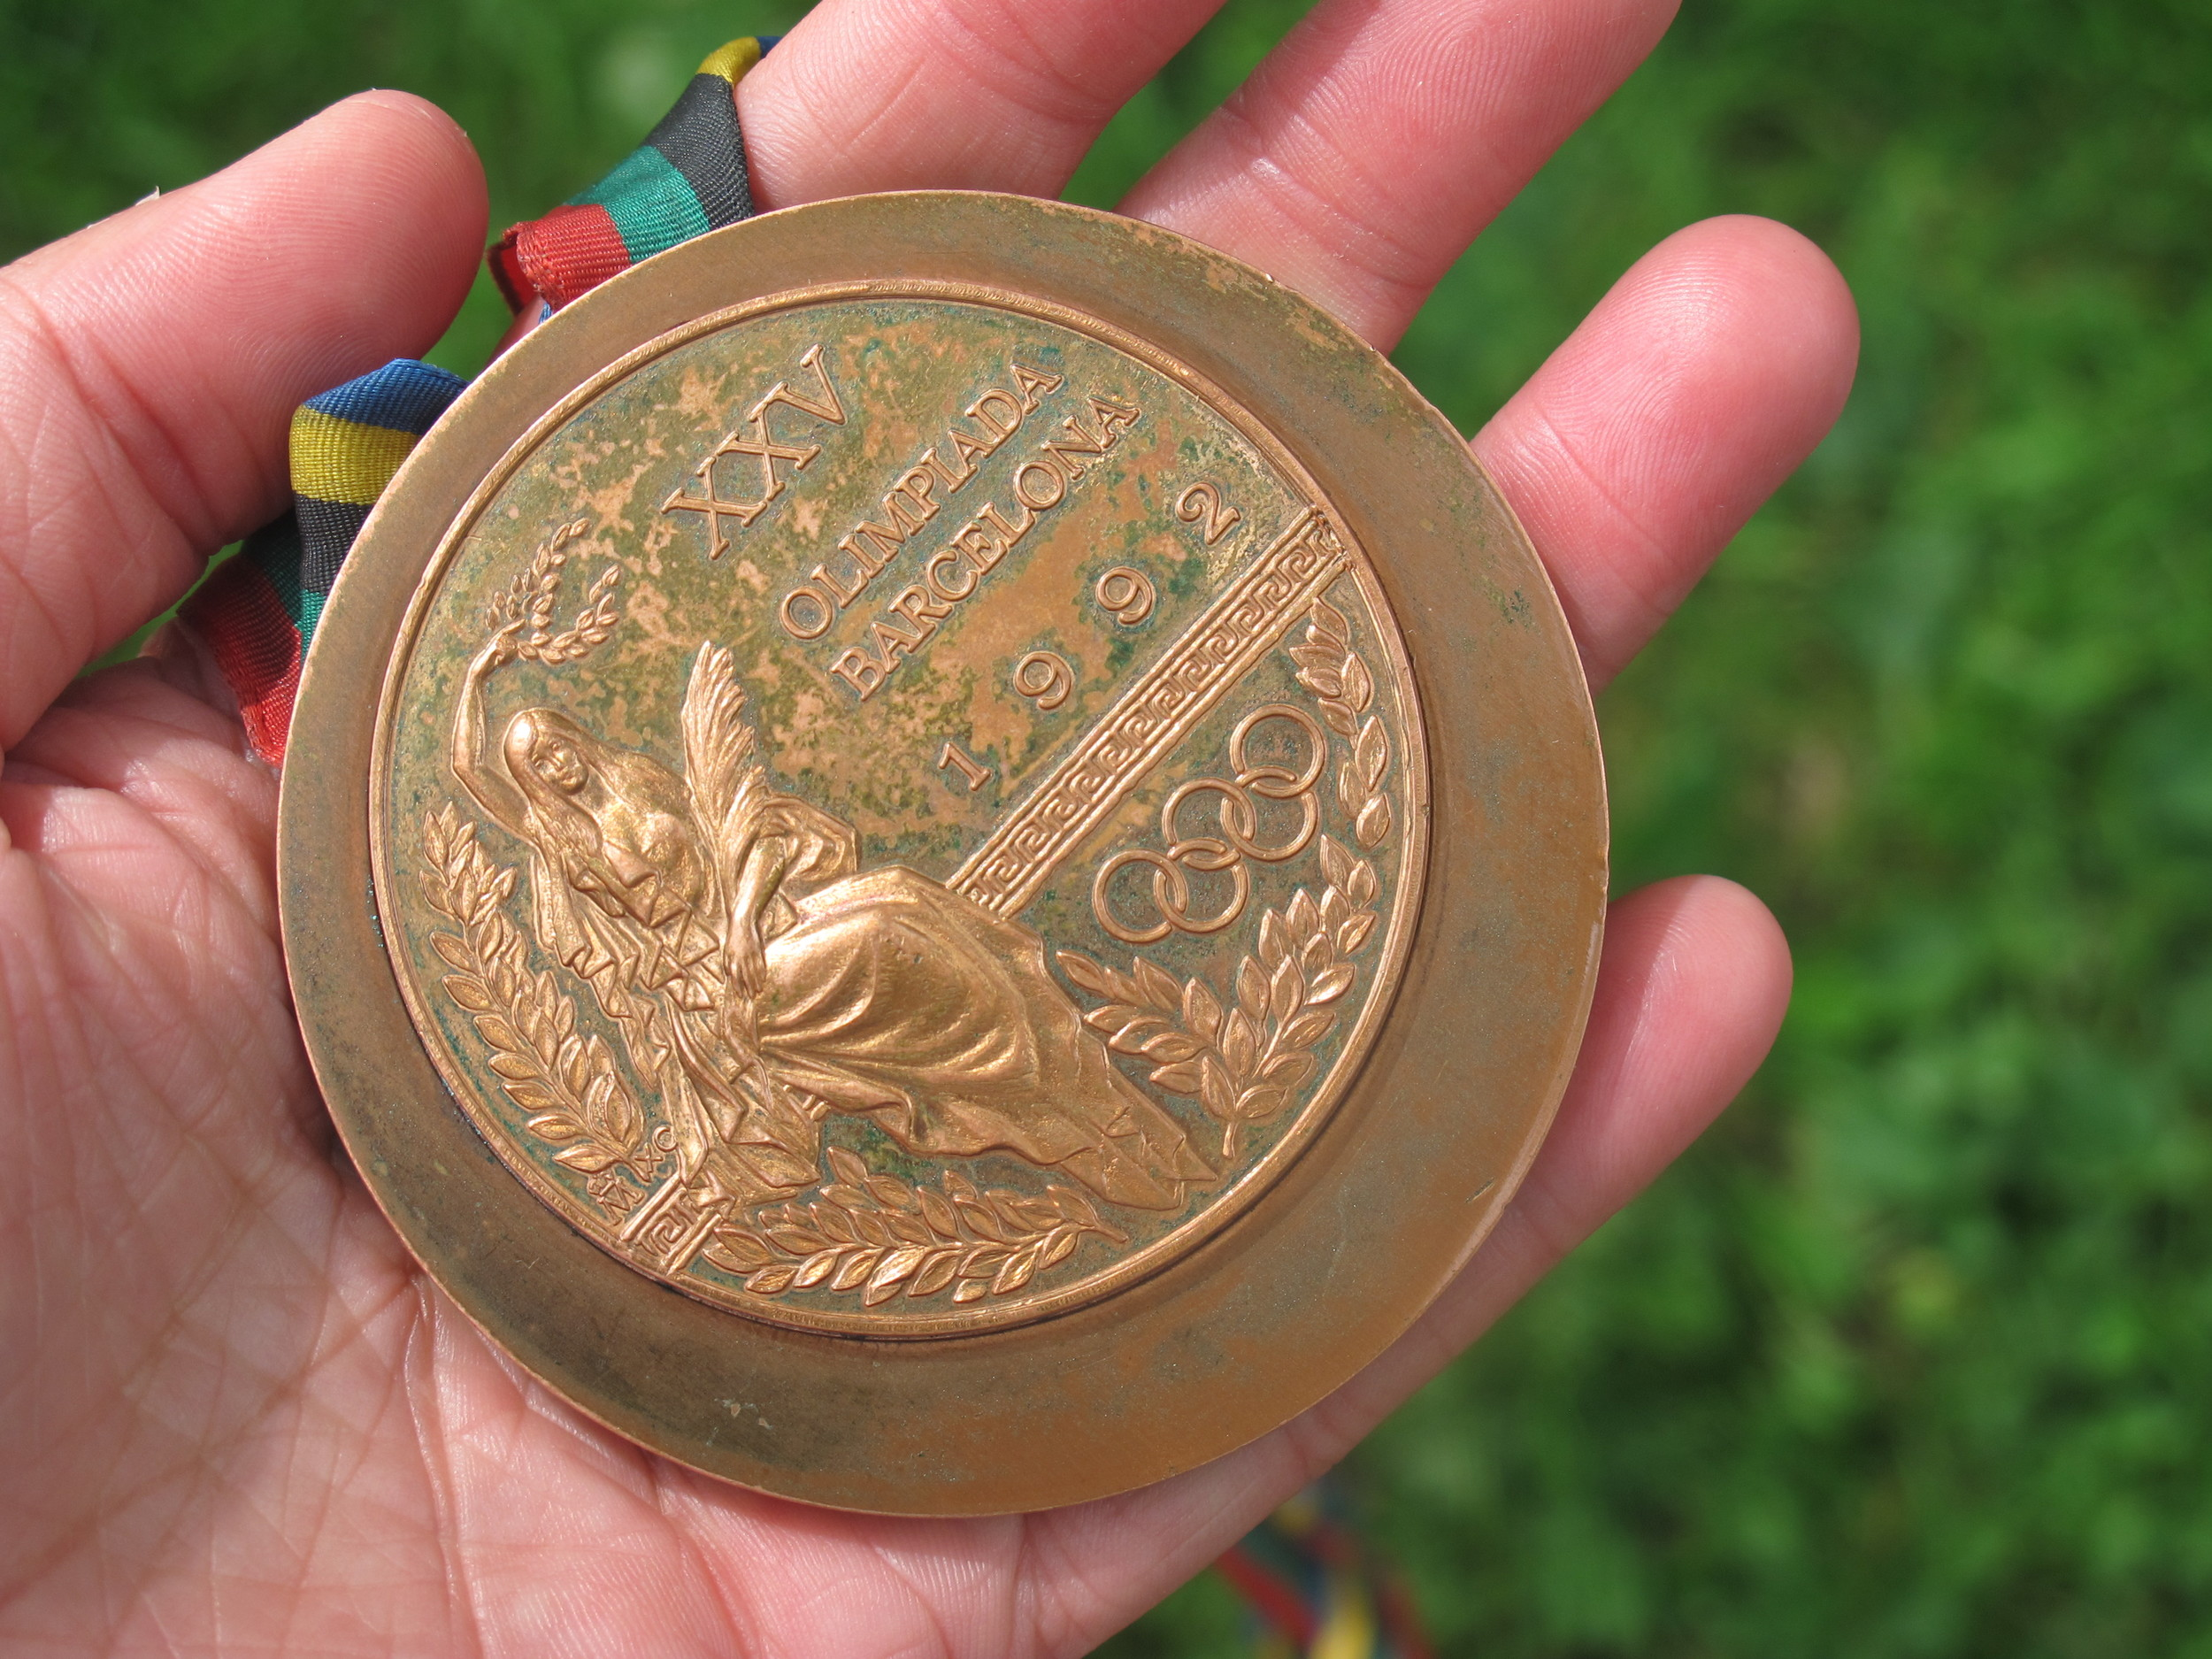 Lynn brought along her 1992 Olympic bronze medal, which she won in the 10,000 meters. I gave the young YMCA runners paper and pencils so they could do rubbings of it.